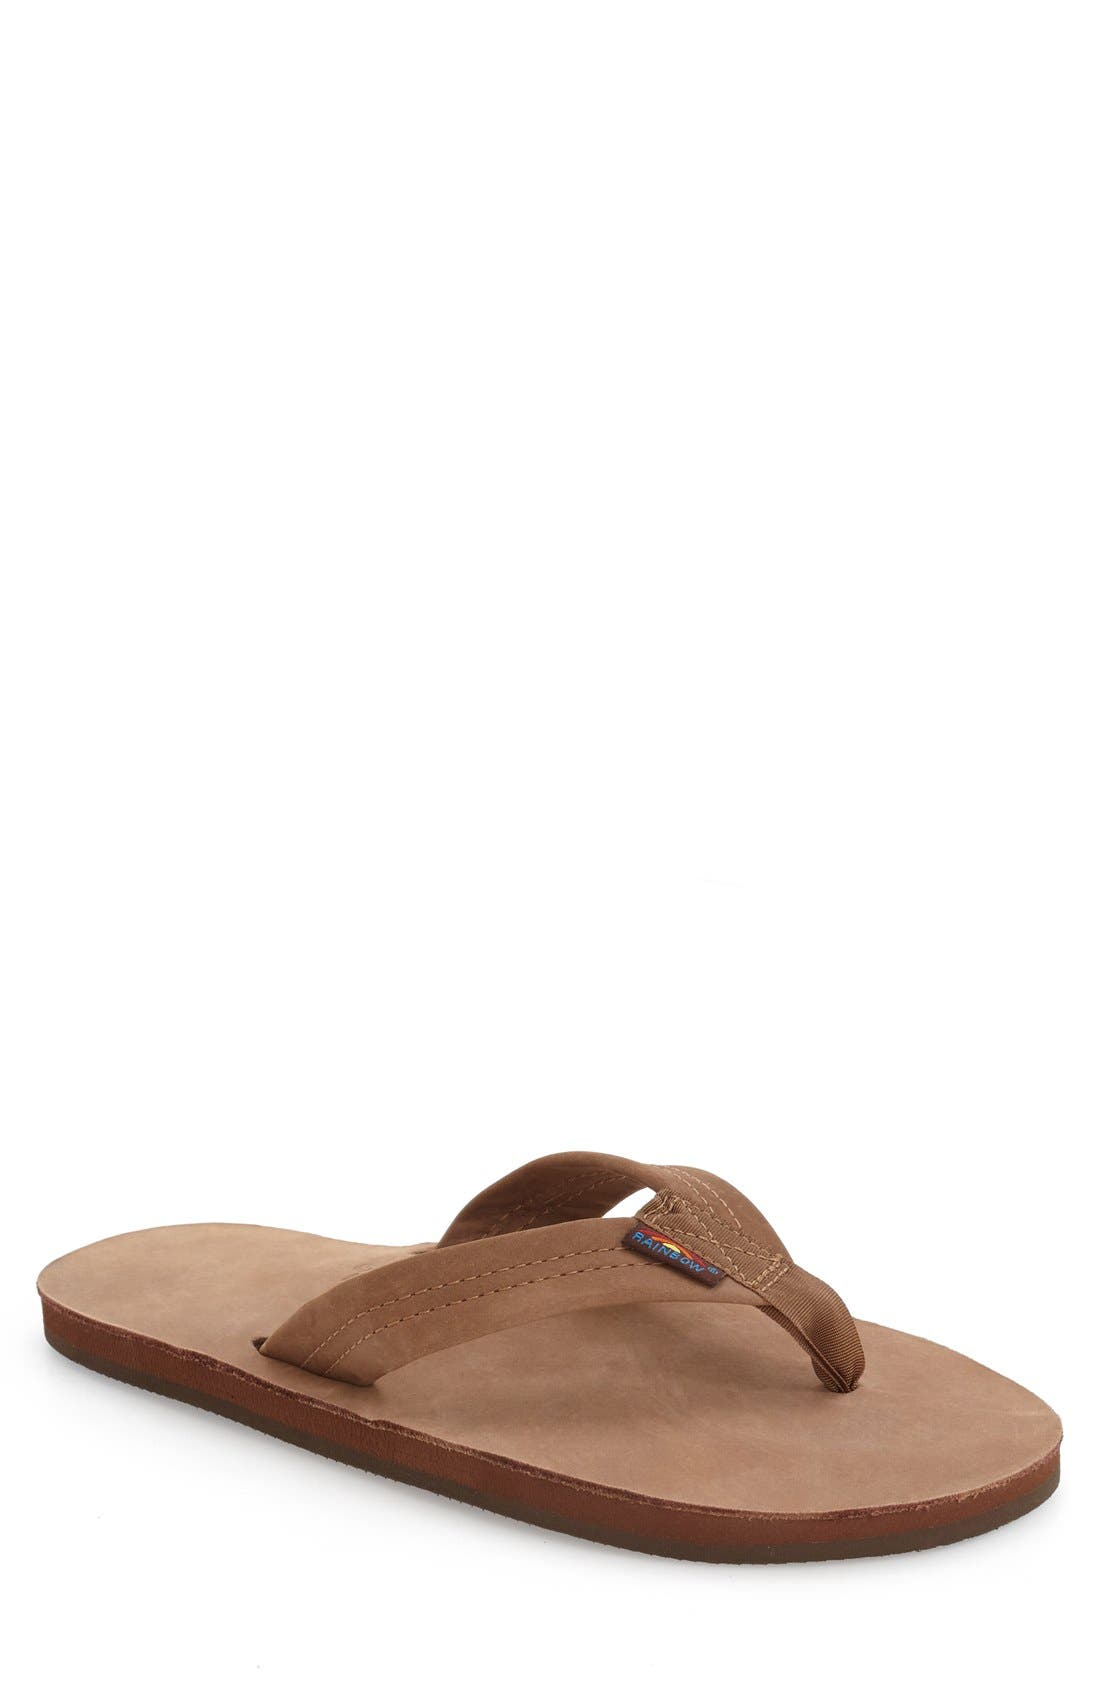 '301Alts' Sandal,                         Main,                         color, Dark Brown